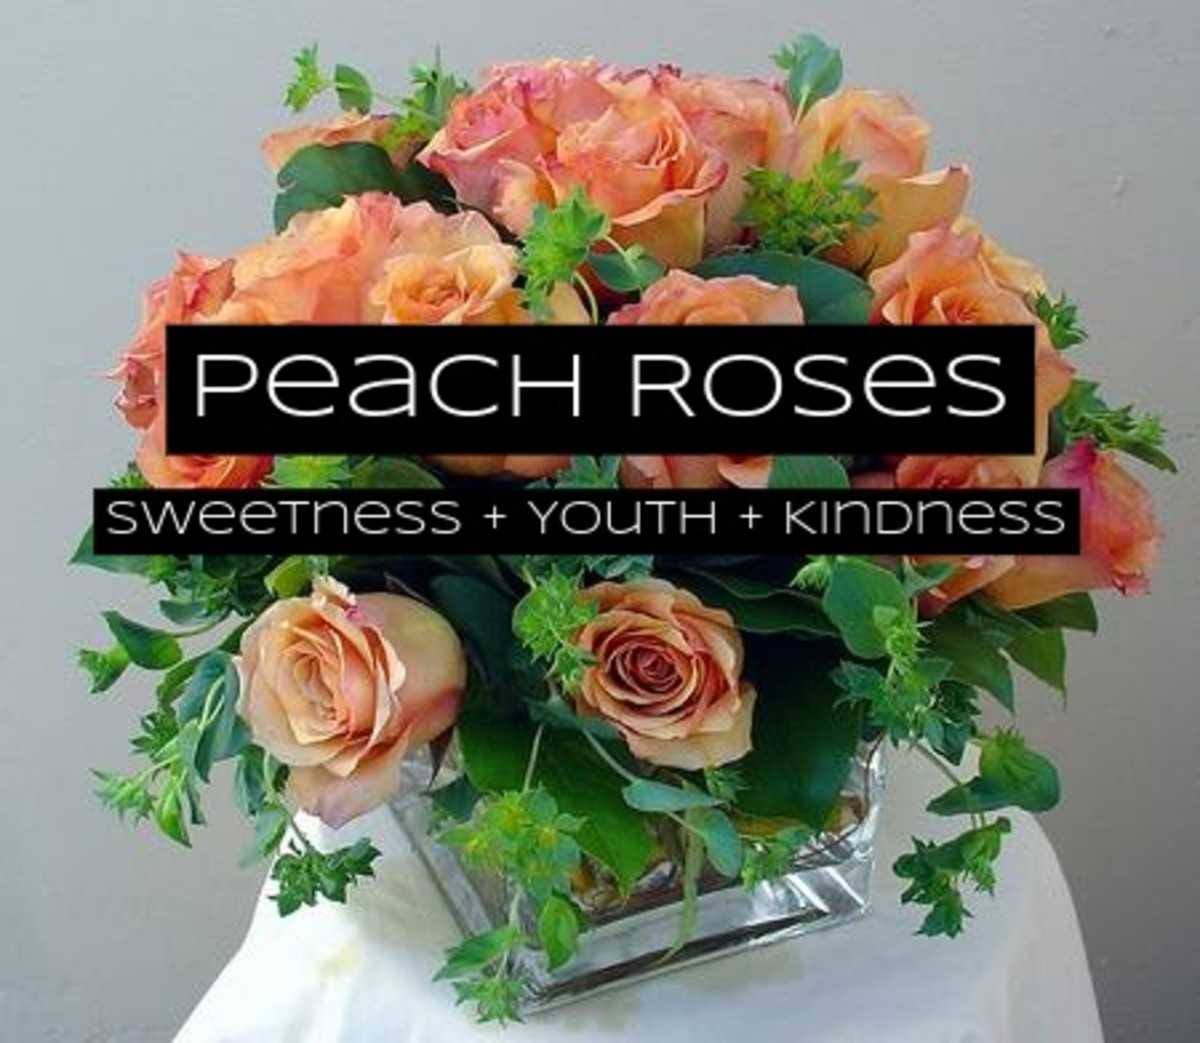 Peach roses are all about sweetness. Give them to younger people in your family.